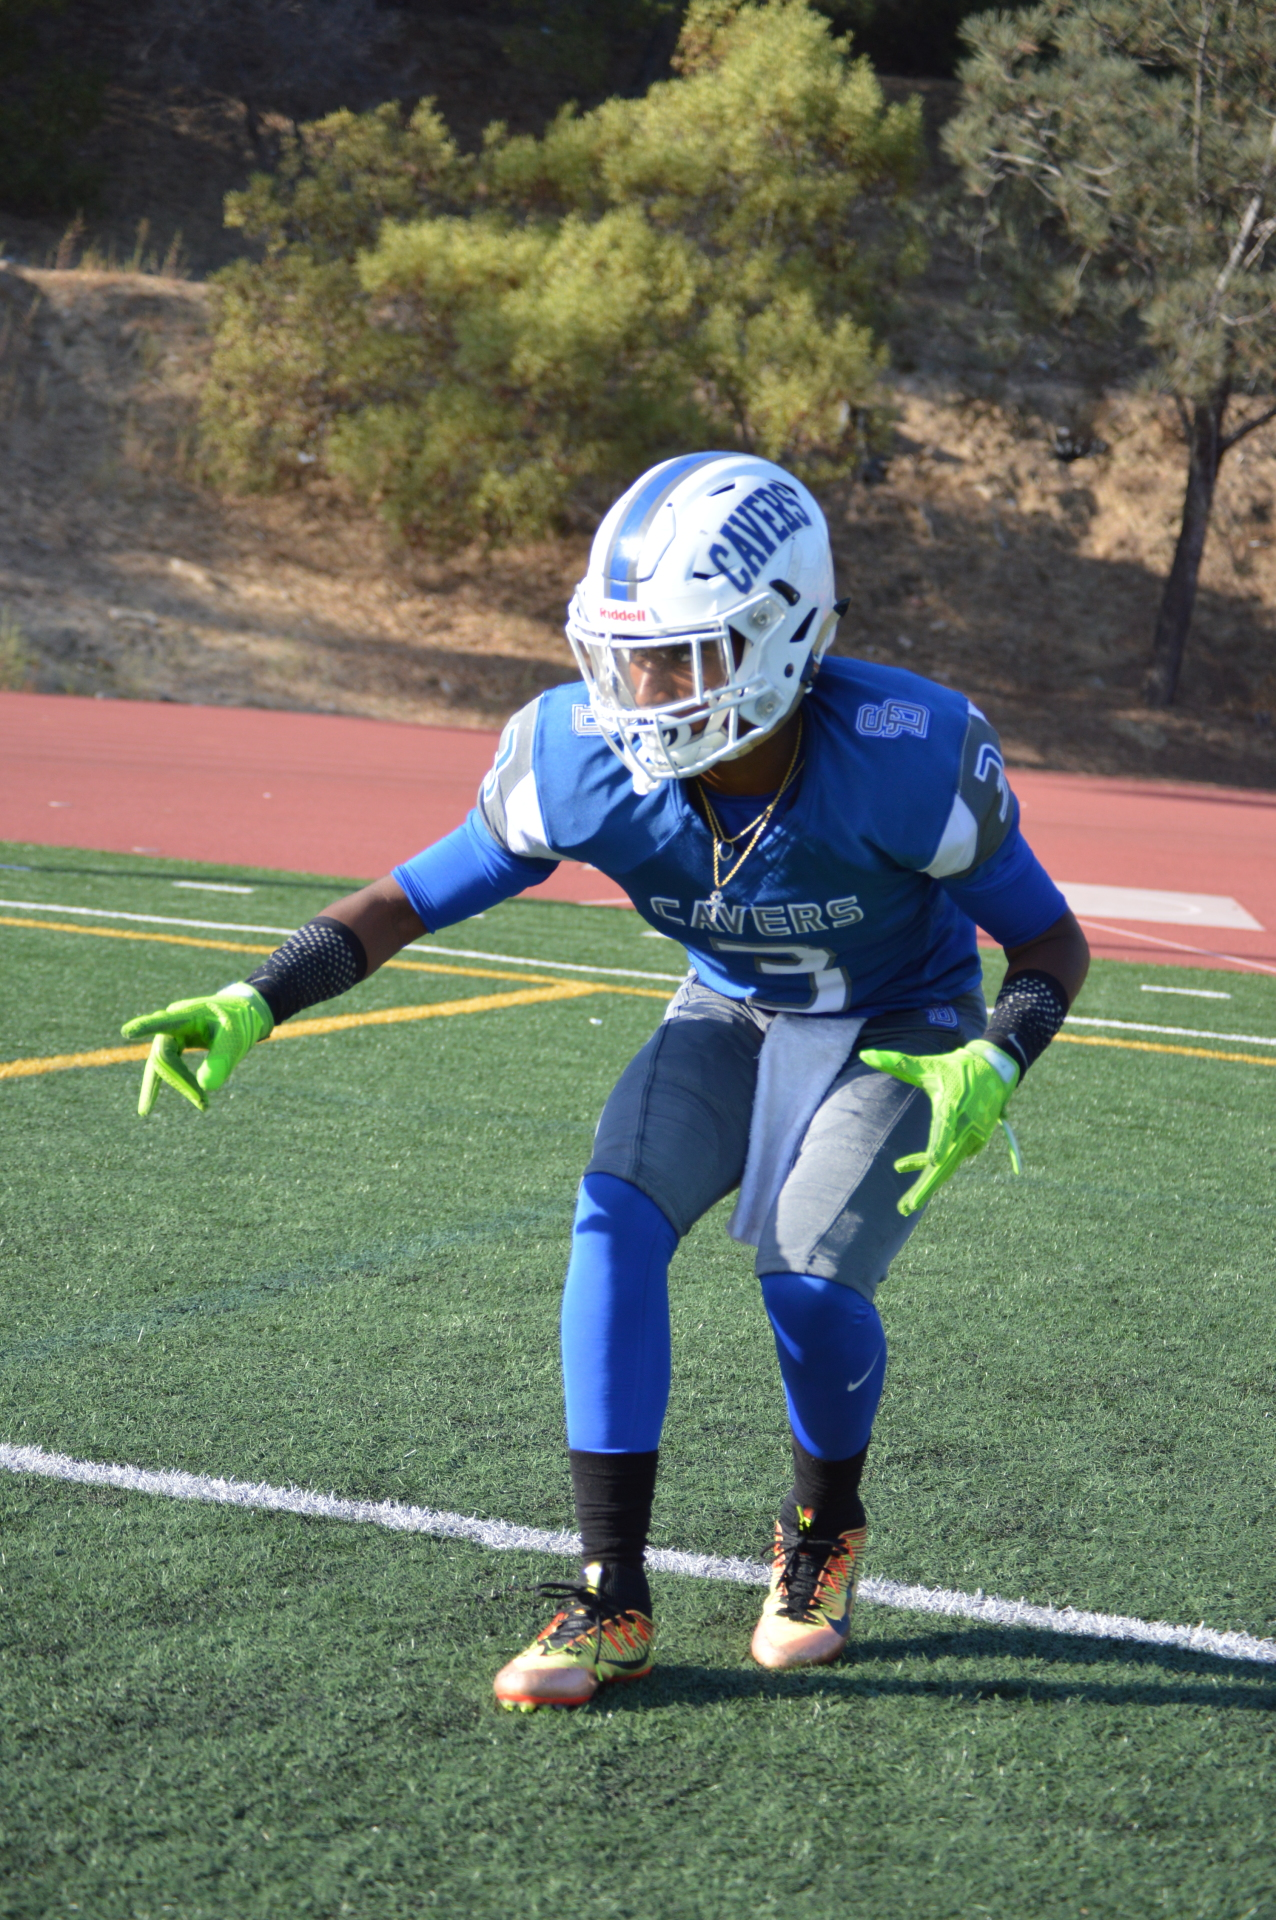 San Diego High School - Athlete Jayden Wickware